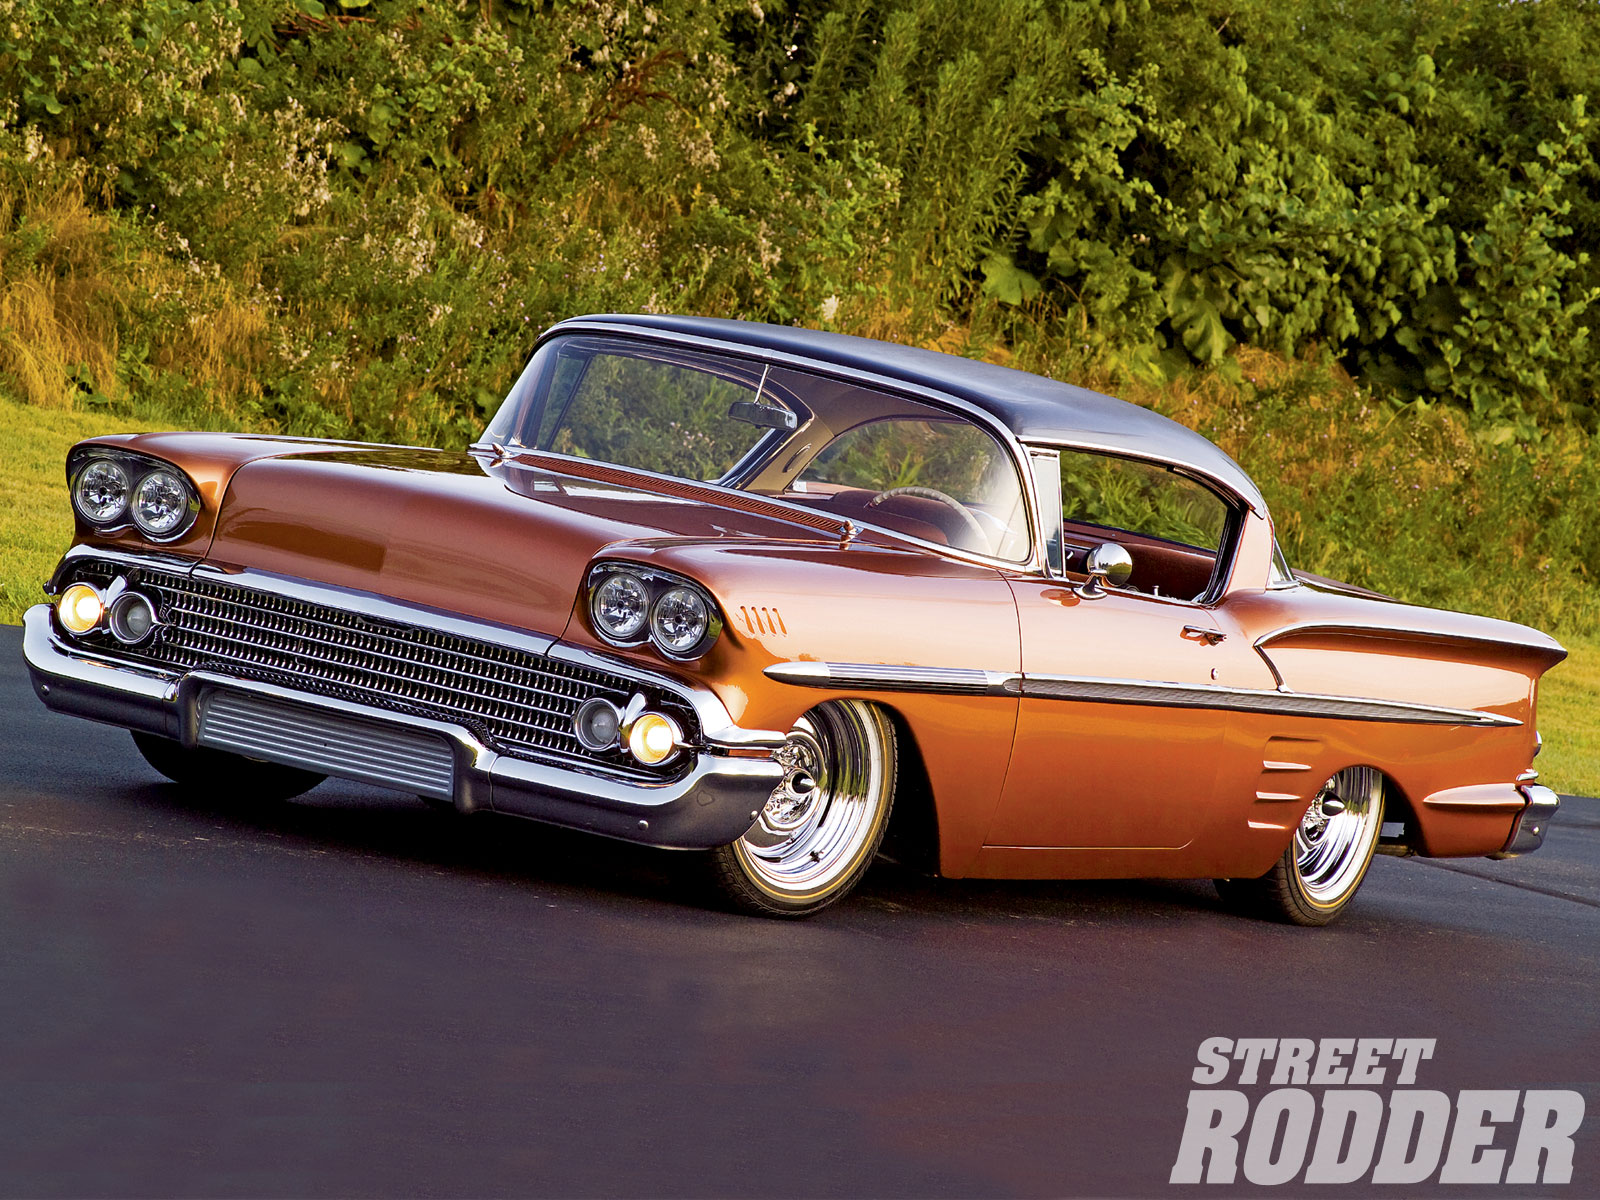 1958 Chevrolet Impala Backgrounds on Wallpapers Vista